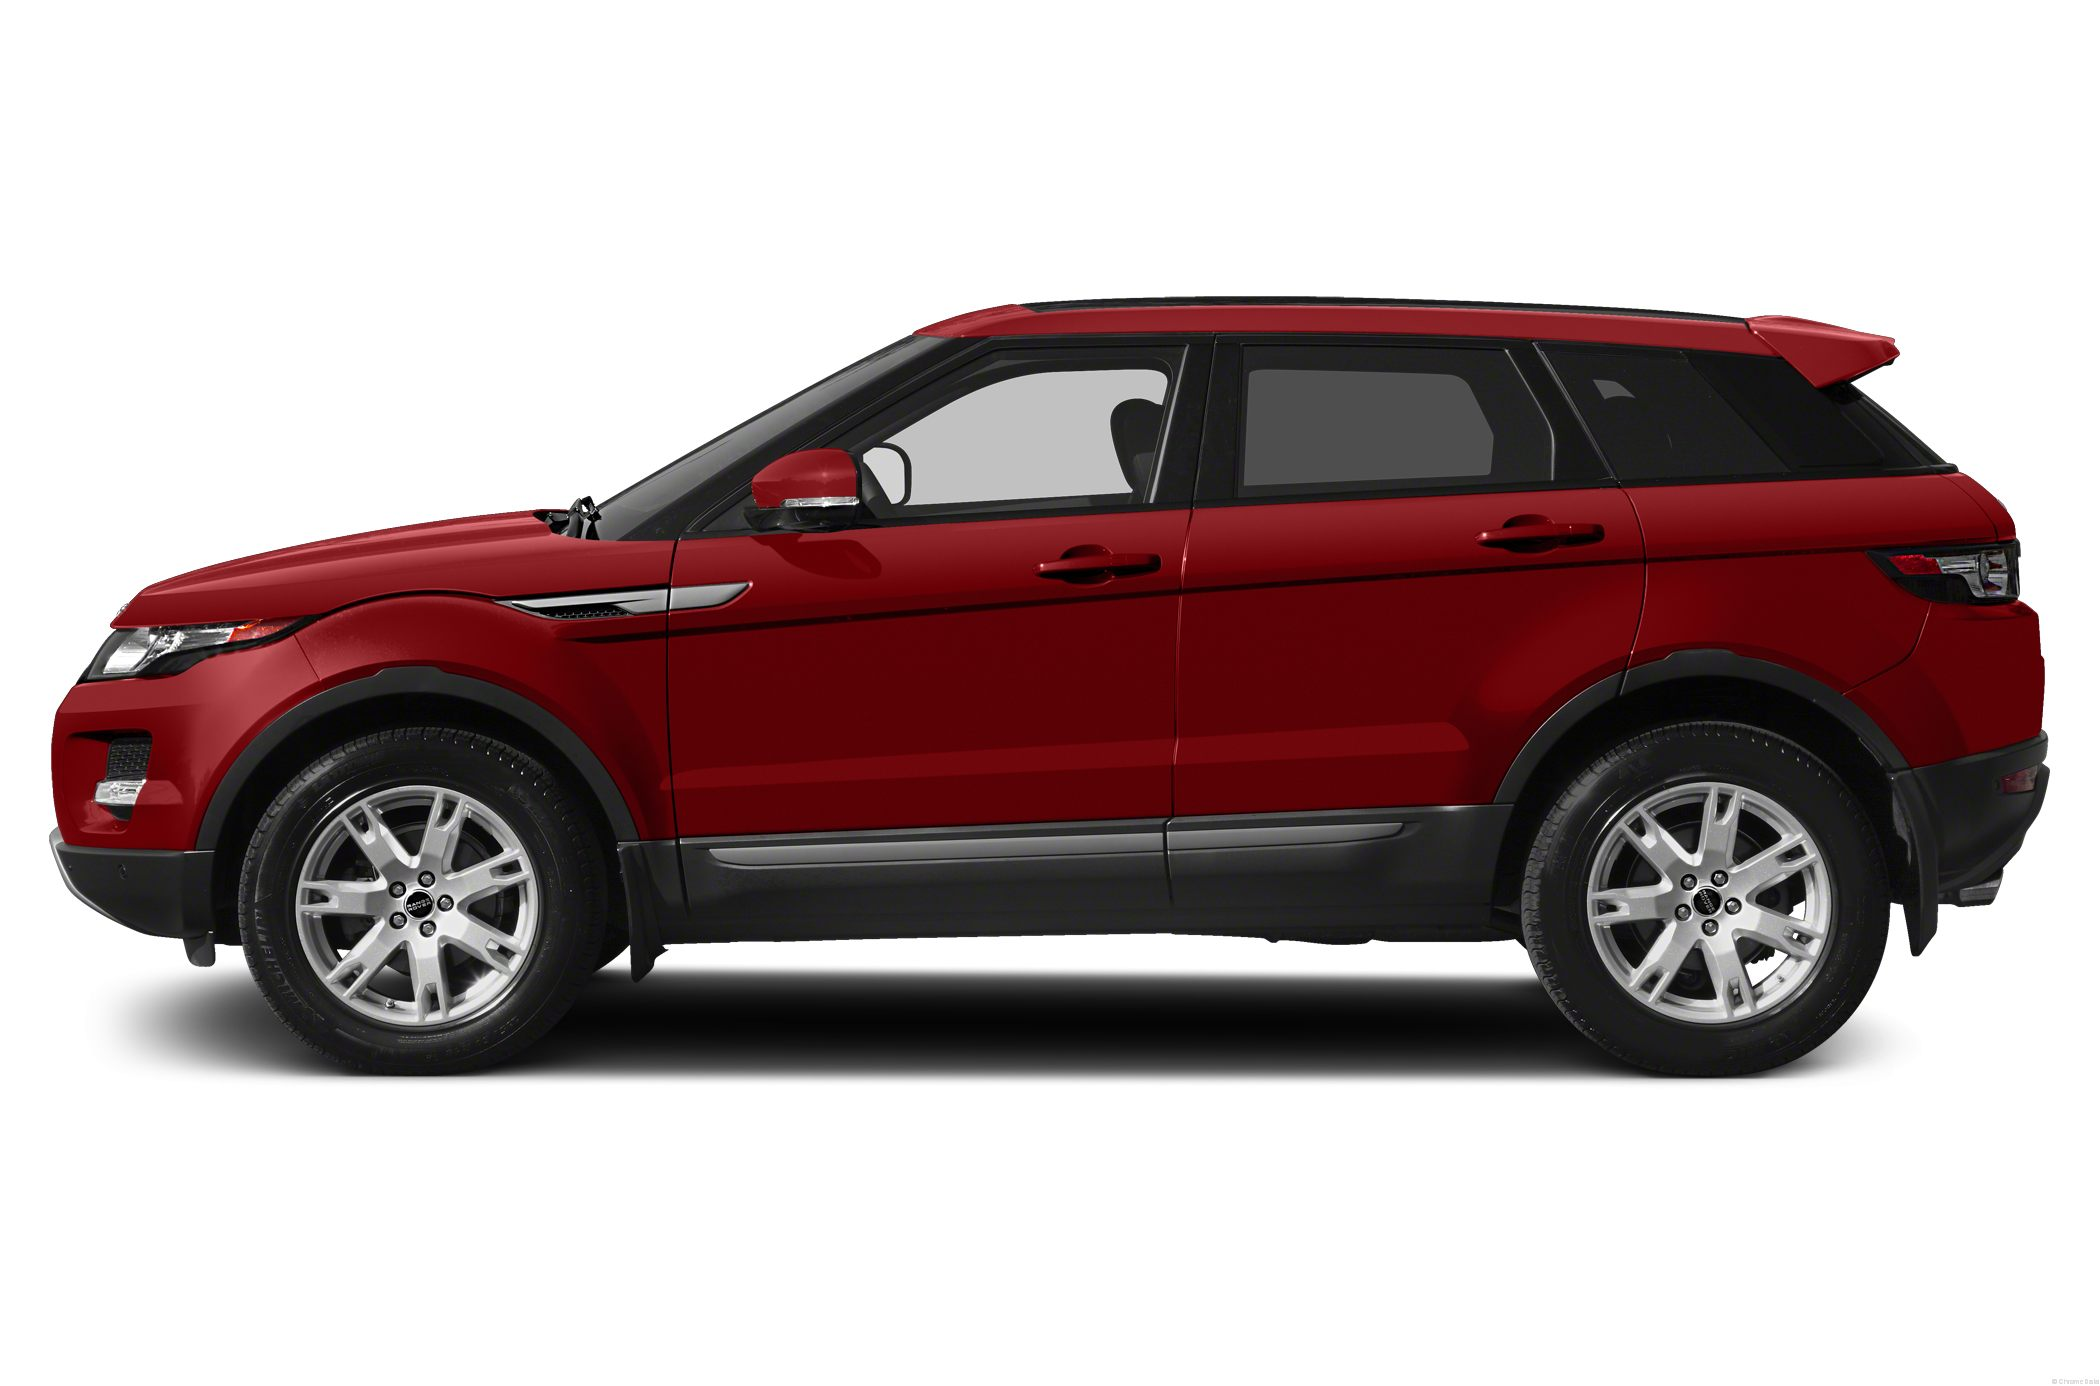 Land Rover Range Rover Evoque price SUV Pure All wheel Drive 5 Door image editor free download Wallpaper